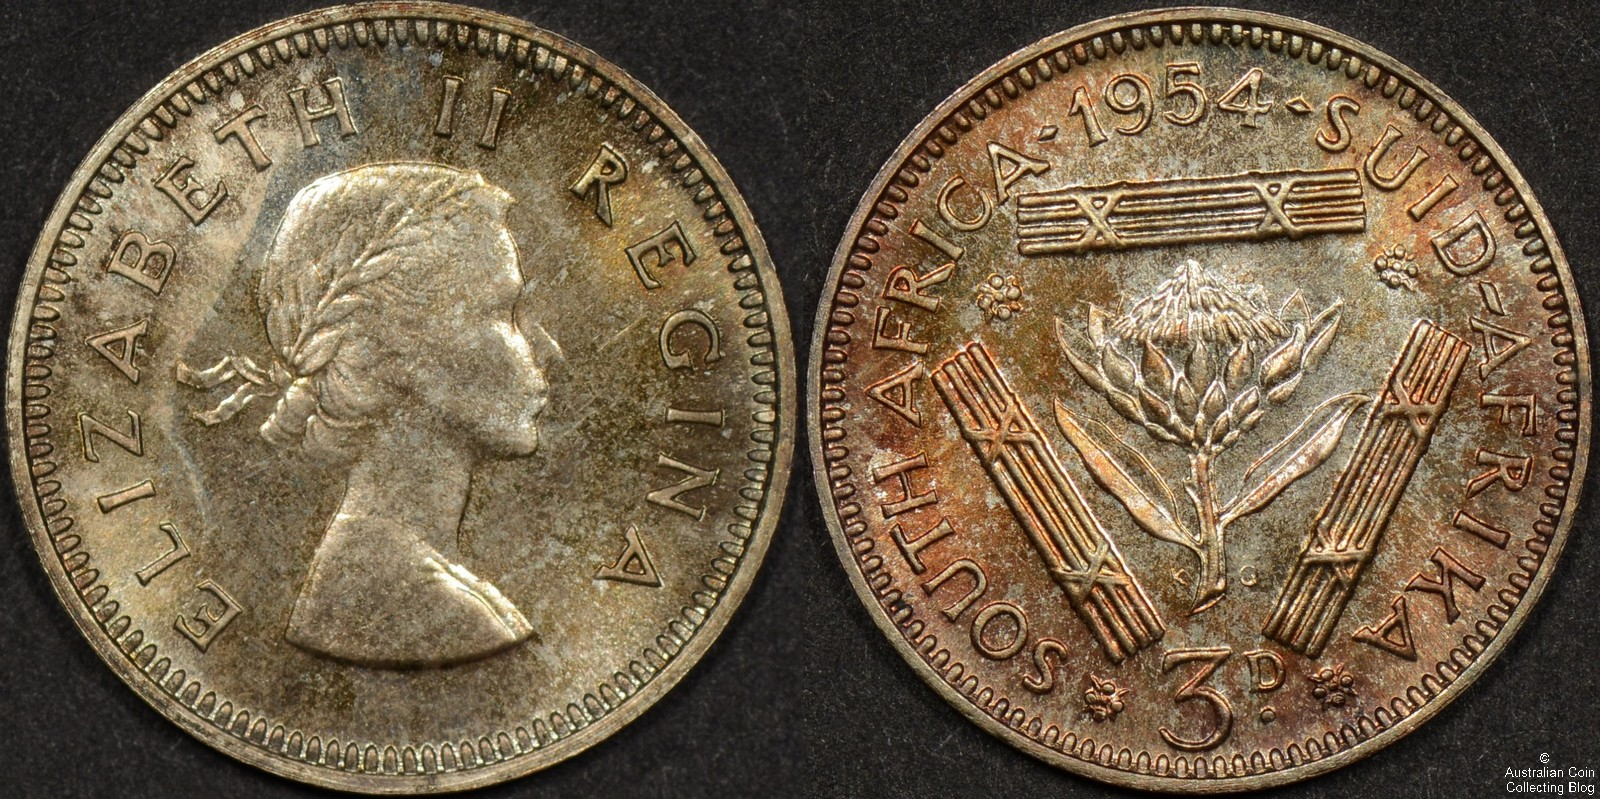 South Africa 1954 3d